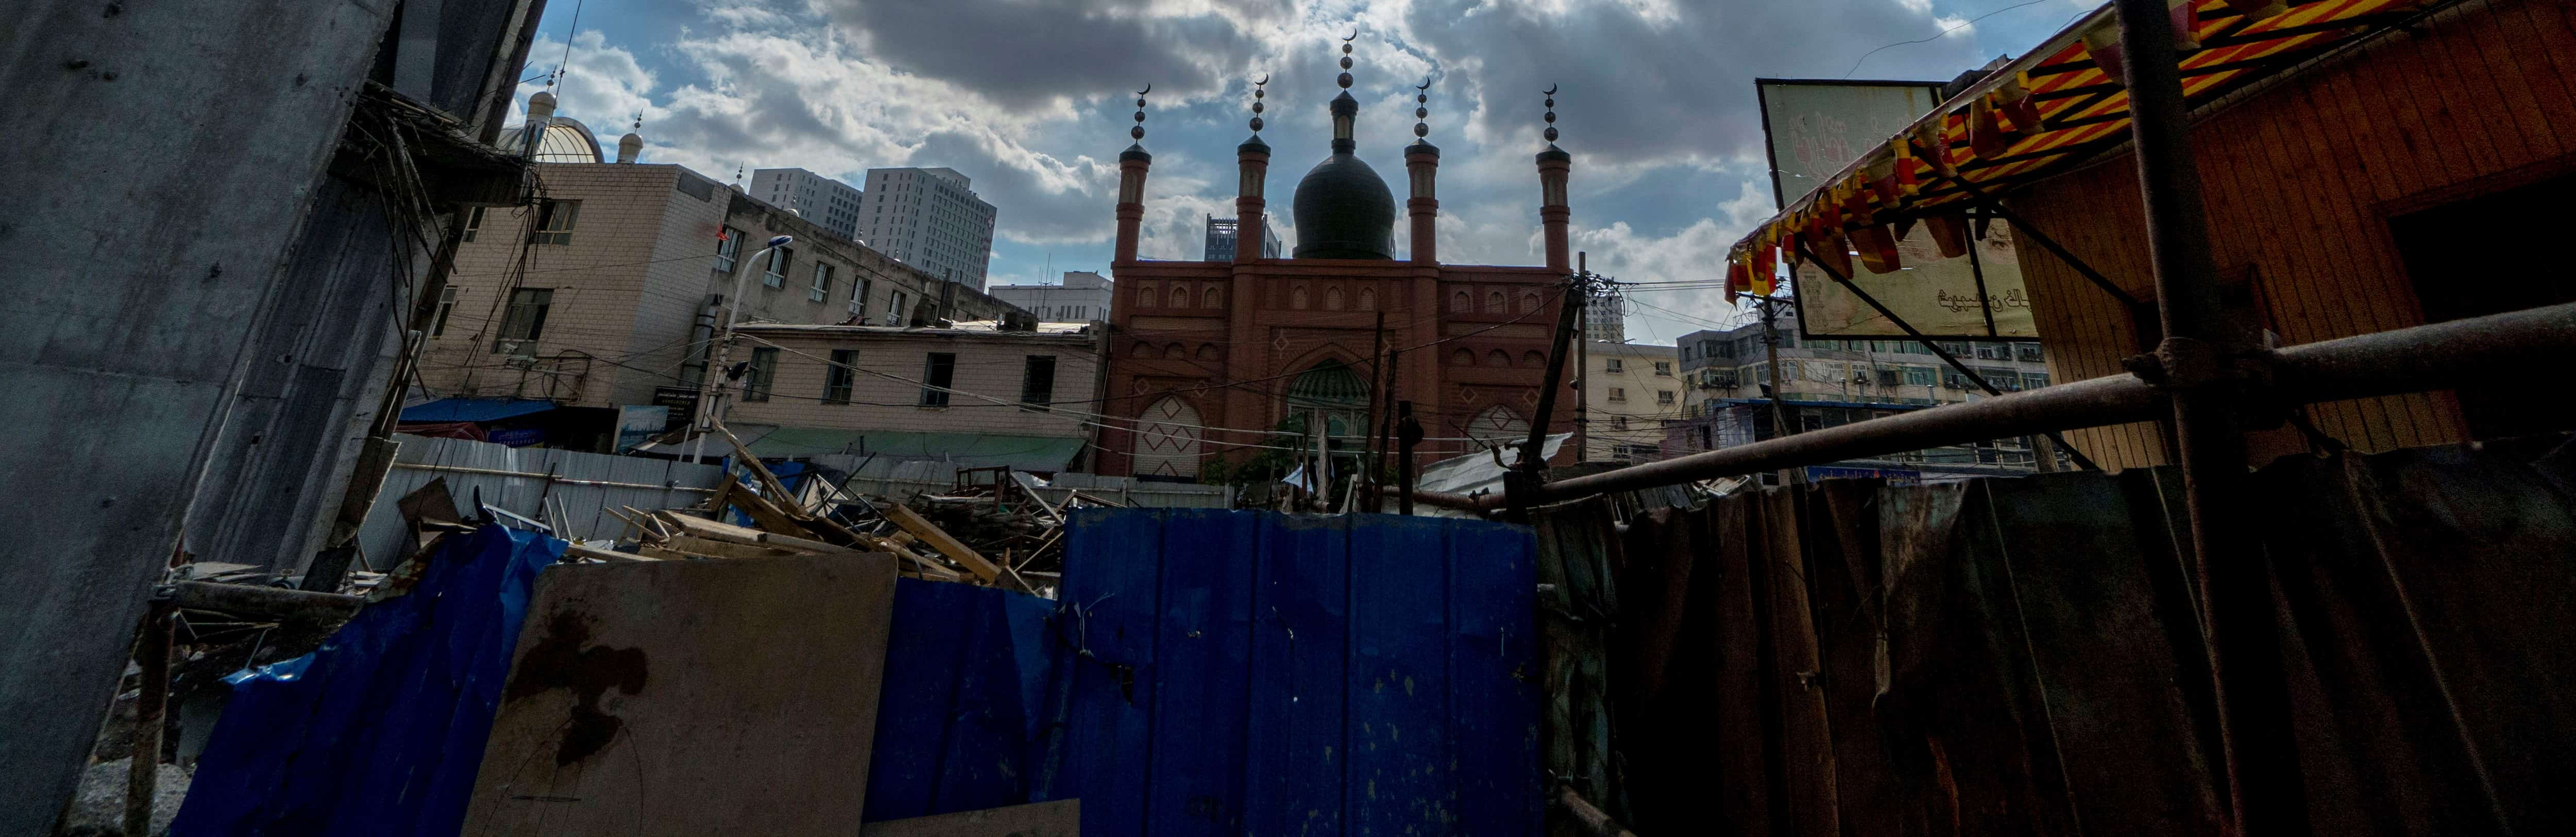 A Mosque in Urumqi, Xinjiang, 2016 (Photo: Getty Images/Zhang Peng)